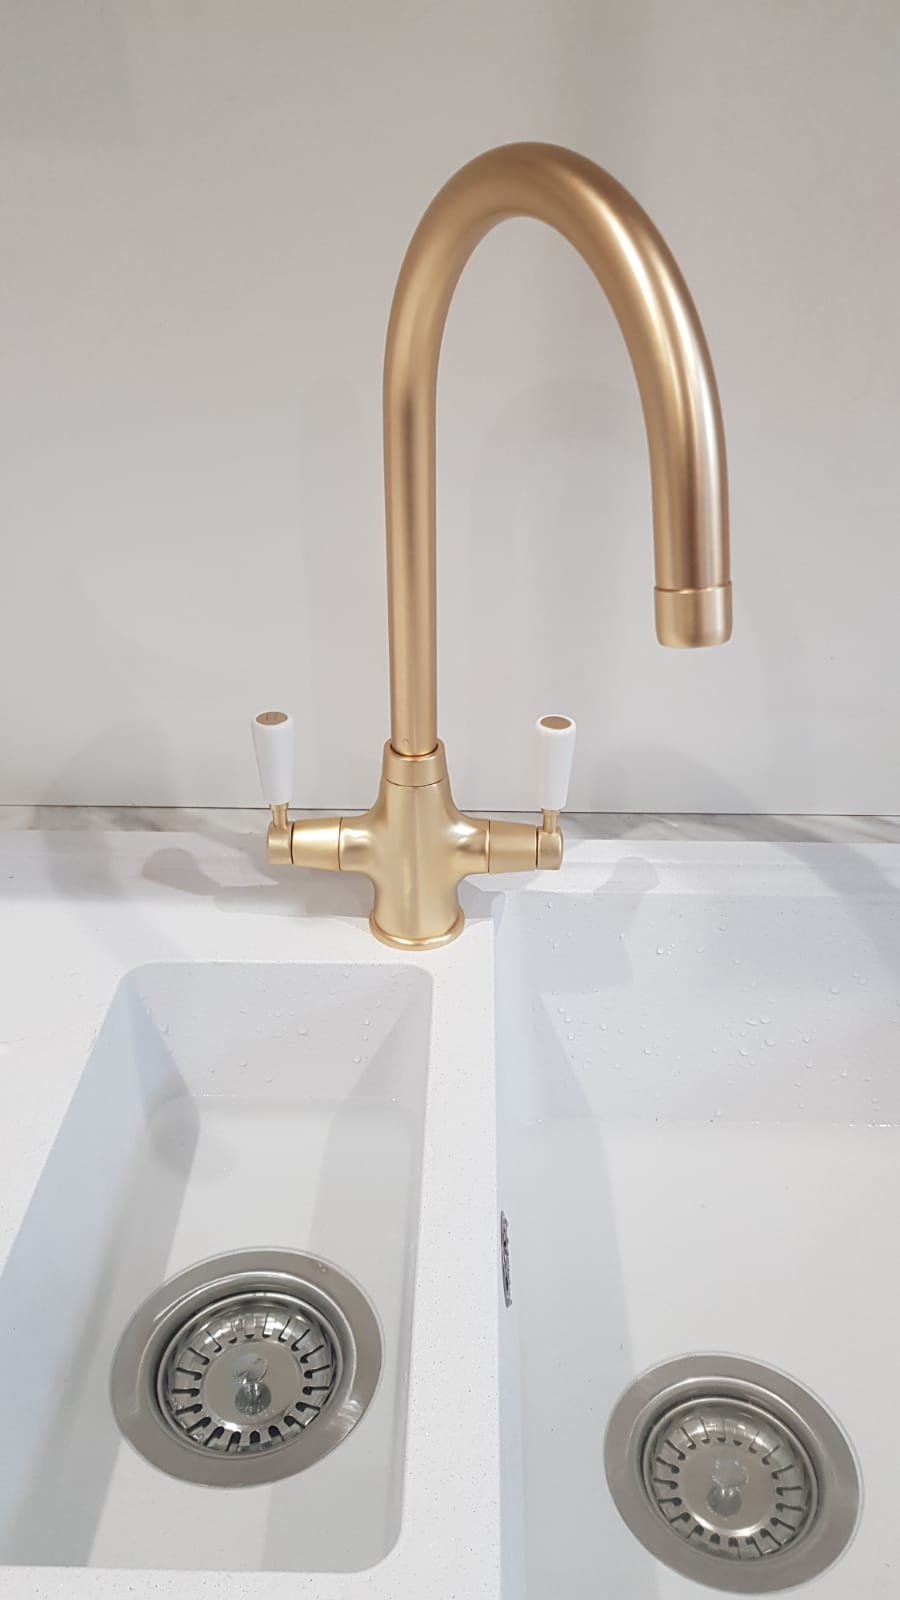 New Tap installation image